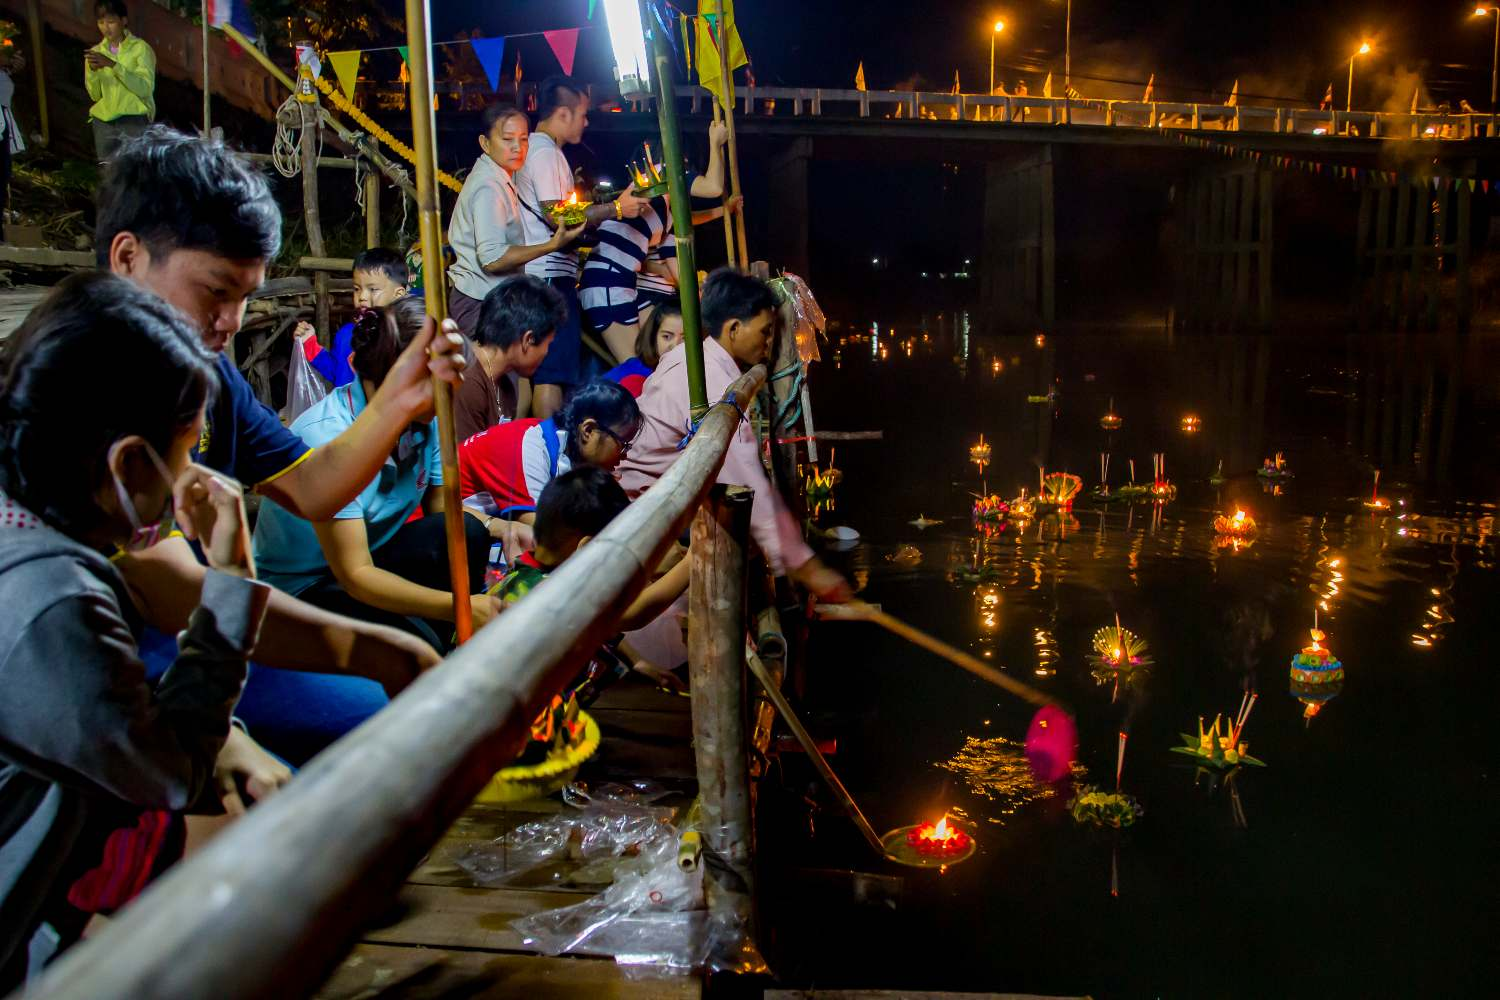 Loy Khratong at the Ping River in Pa Dua, Thailand